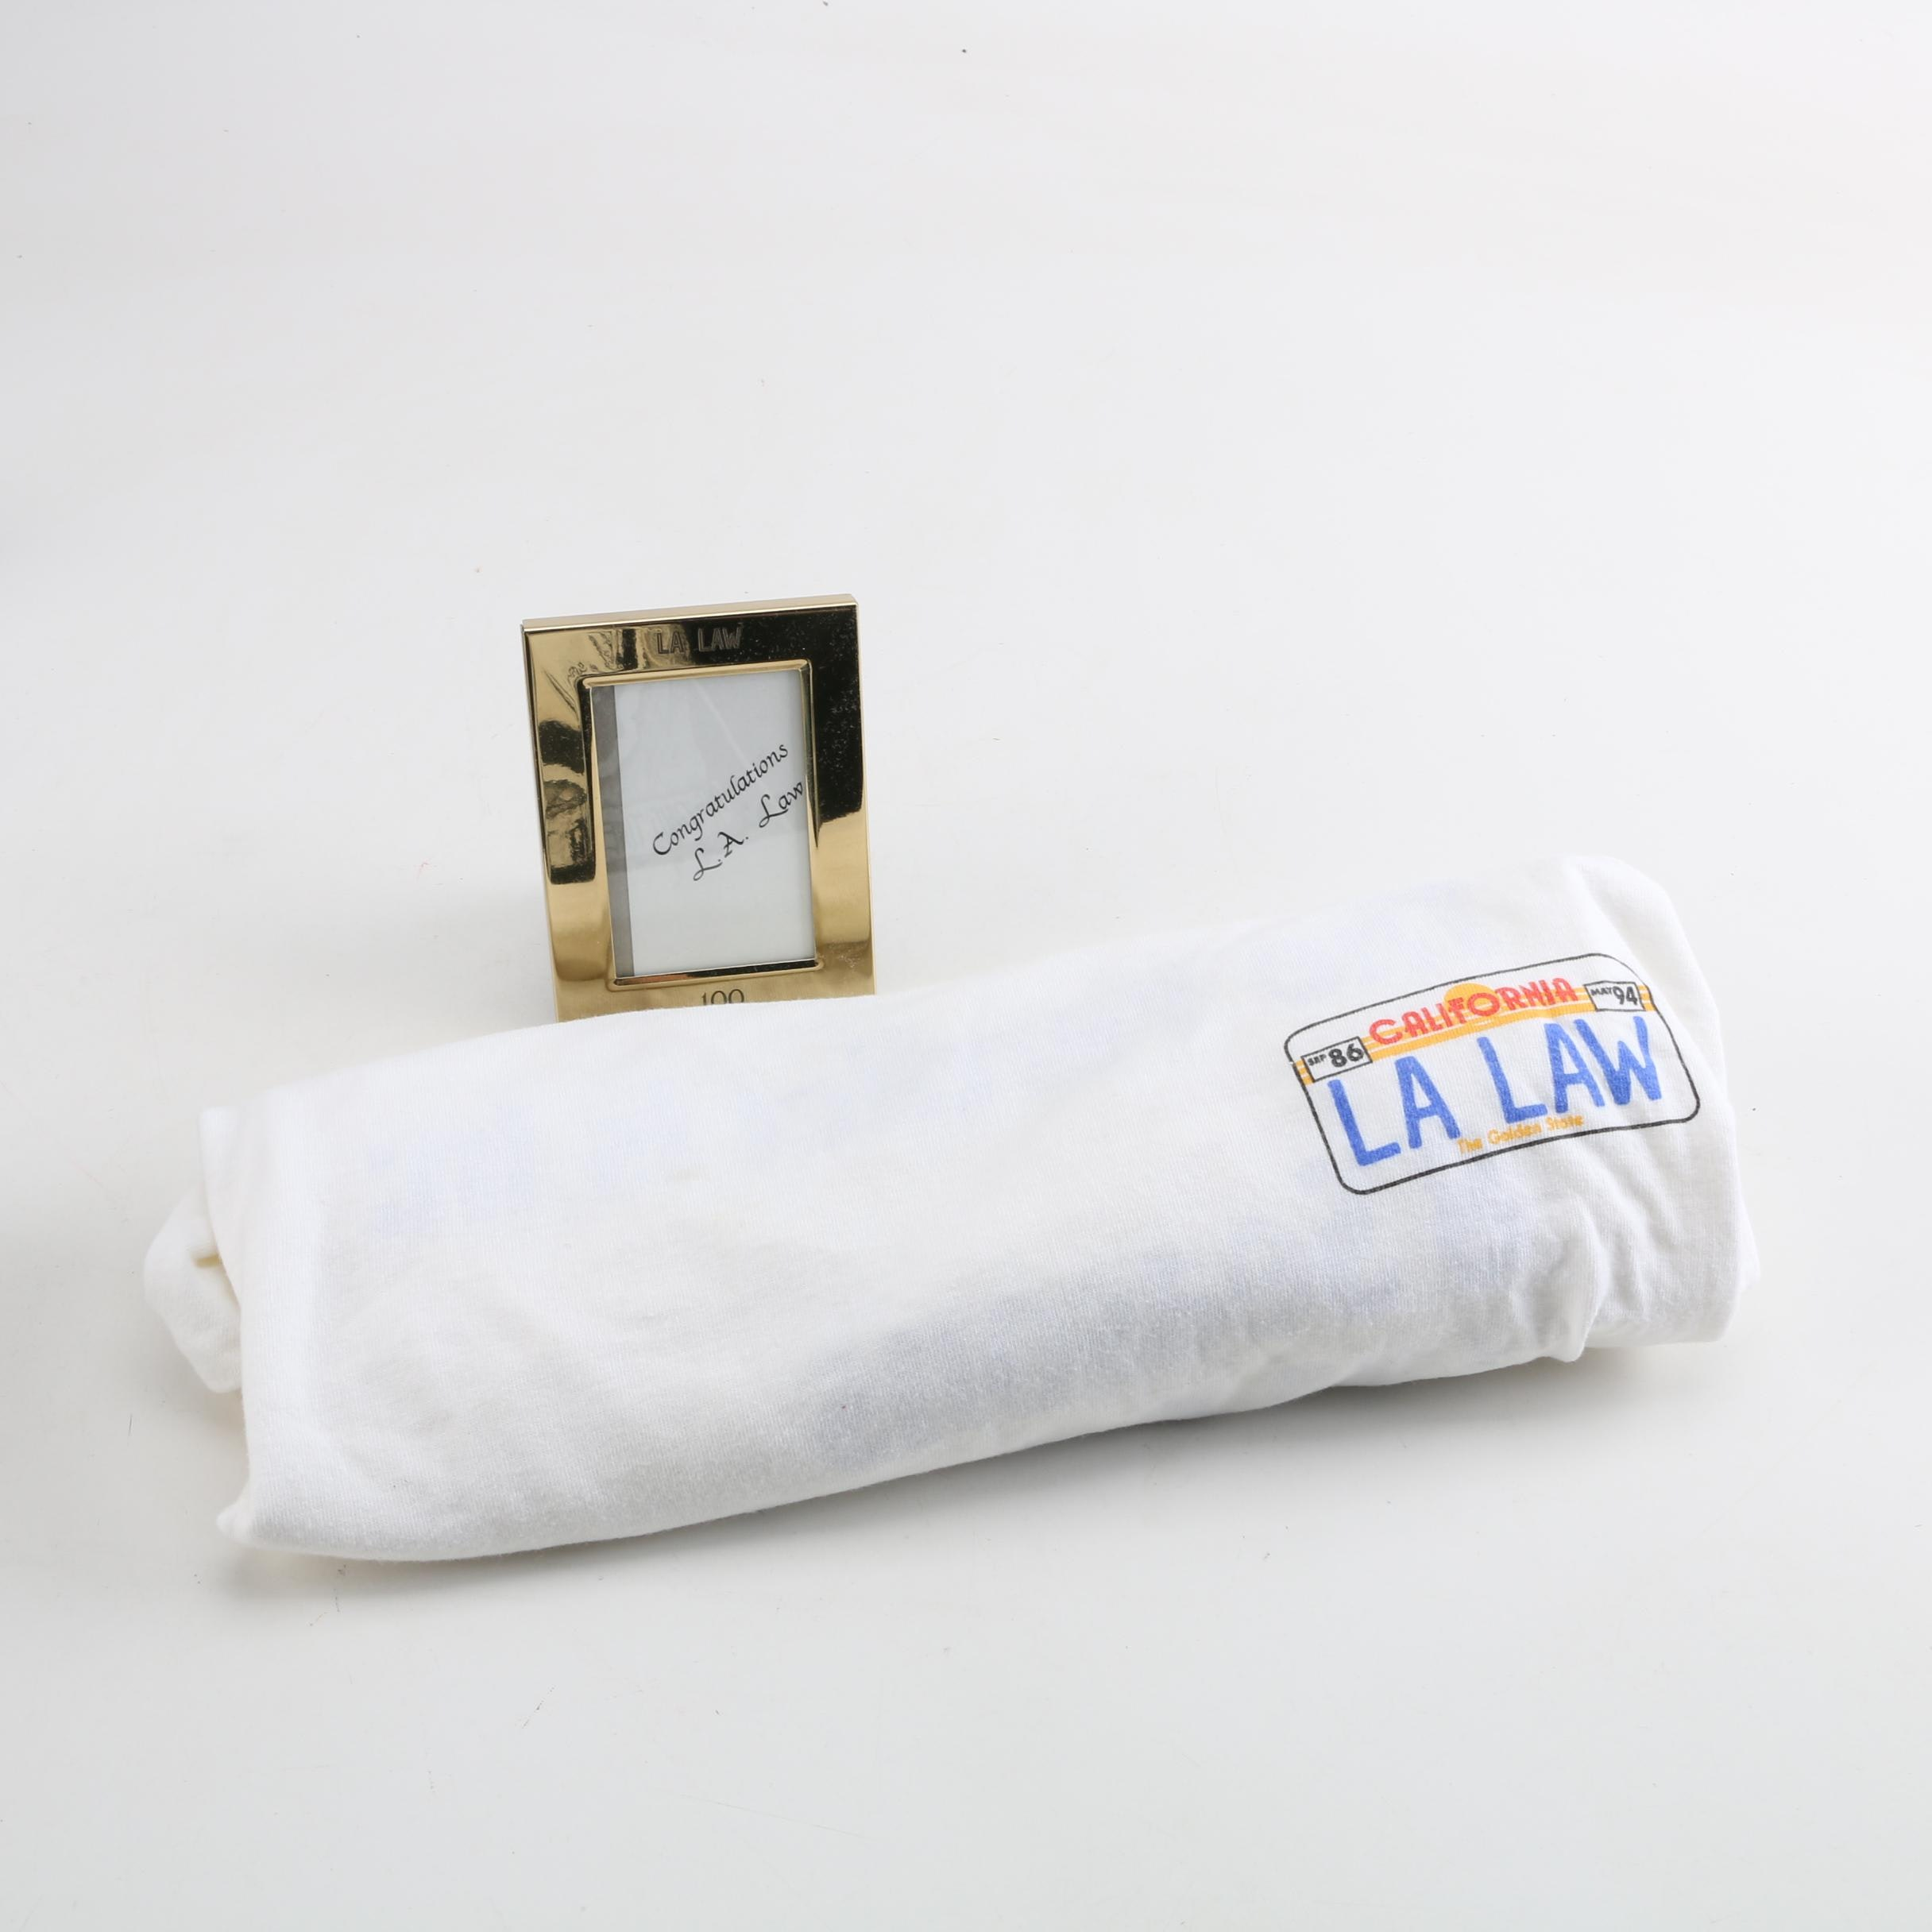 """Television Show """"LA Law"""" T-Shirt and Commemorative Picture Frame"""